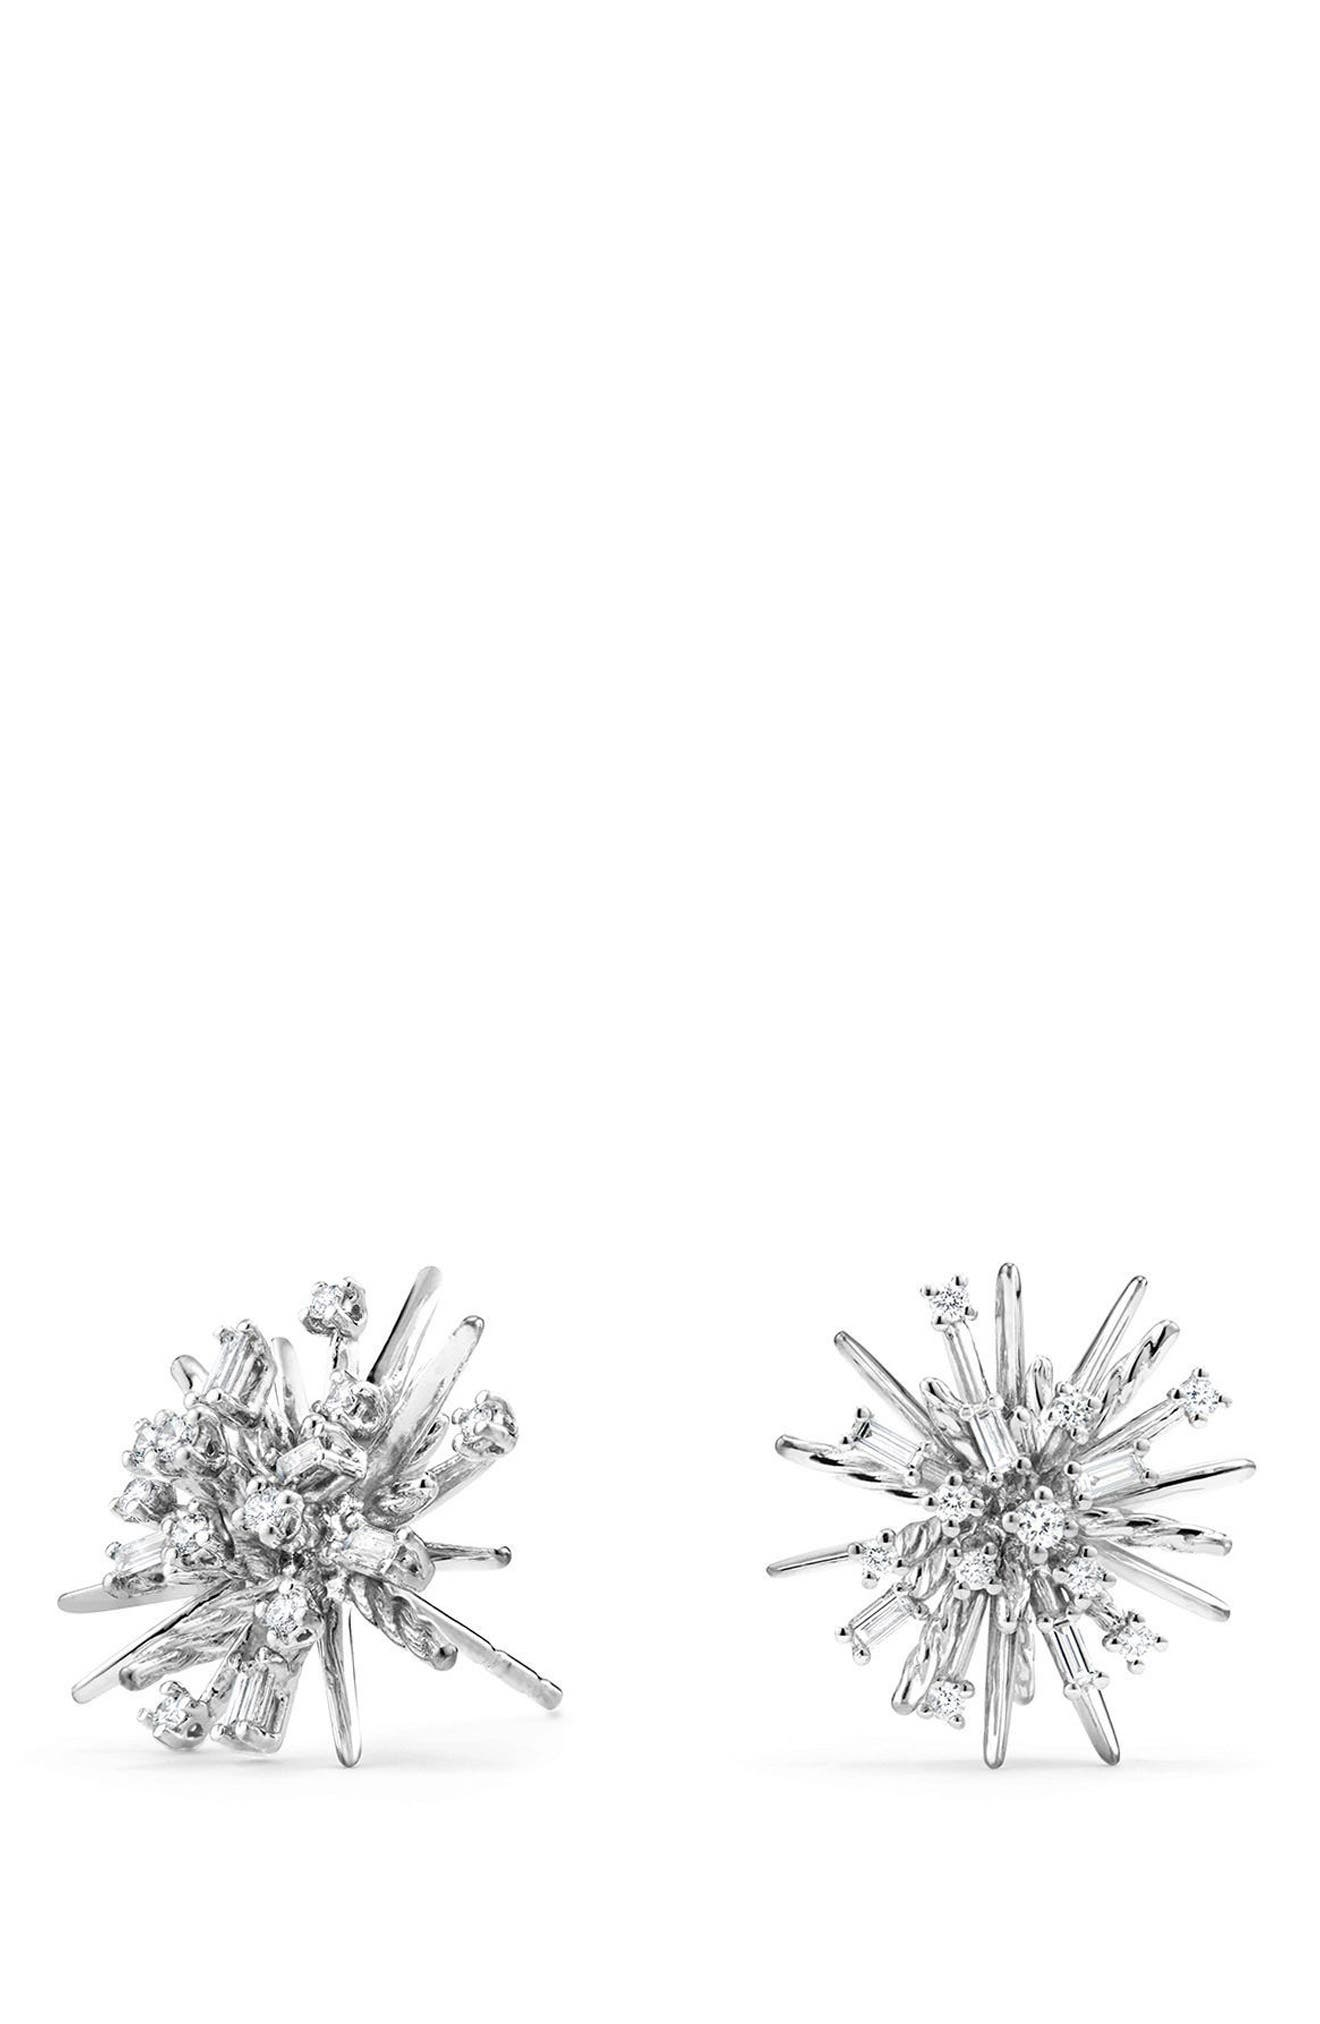 Supernova Stud Earrings with Diamonds in 18K White Gold,                         Main,                         color, WHITE GOLD/ DIAMOND